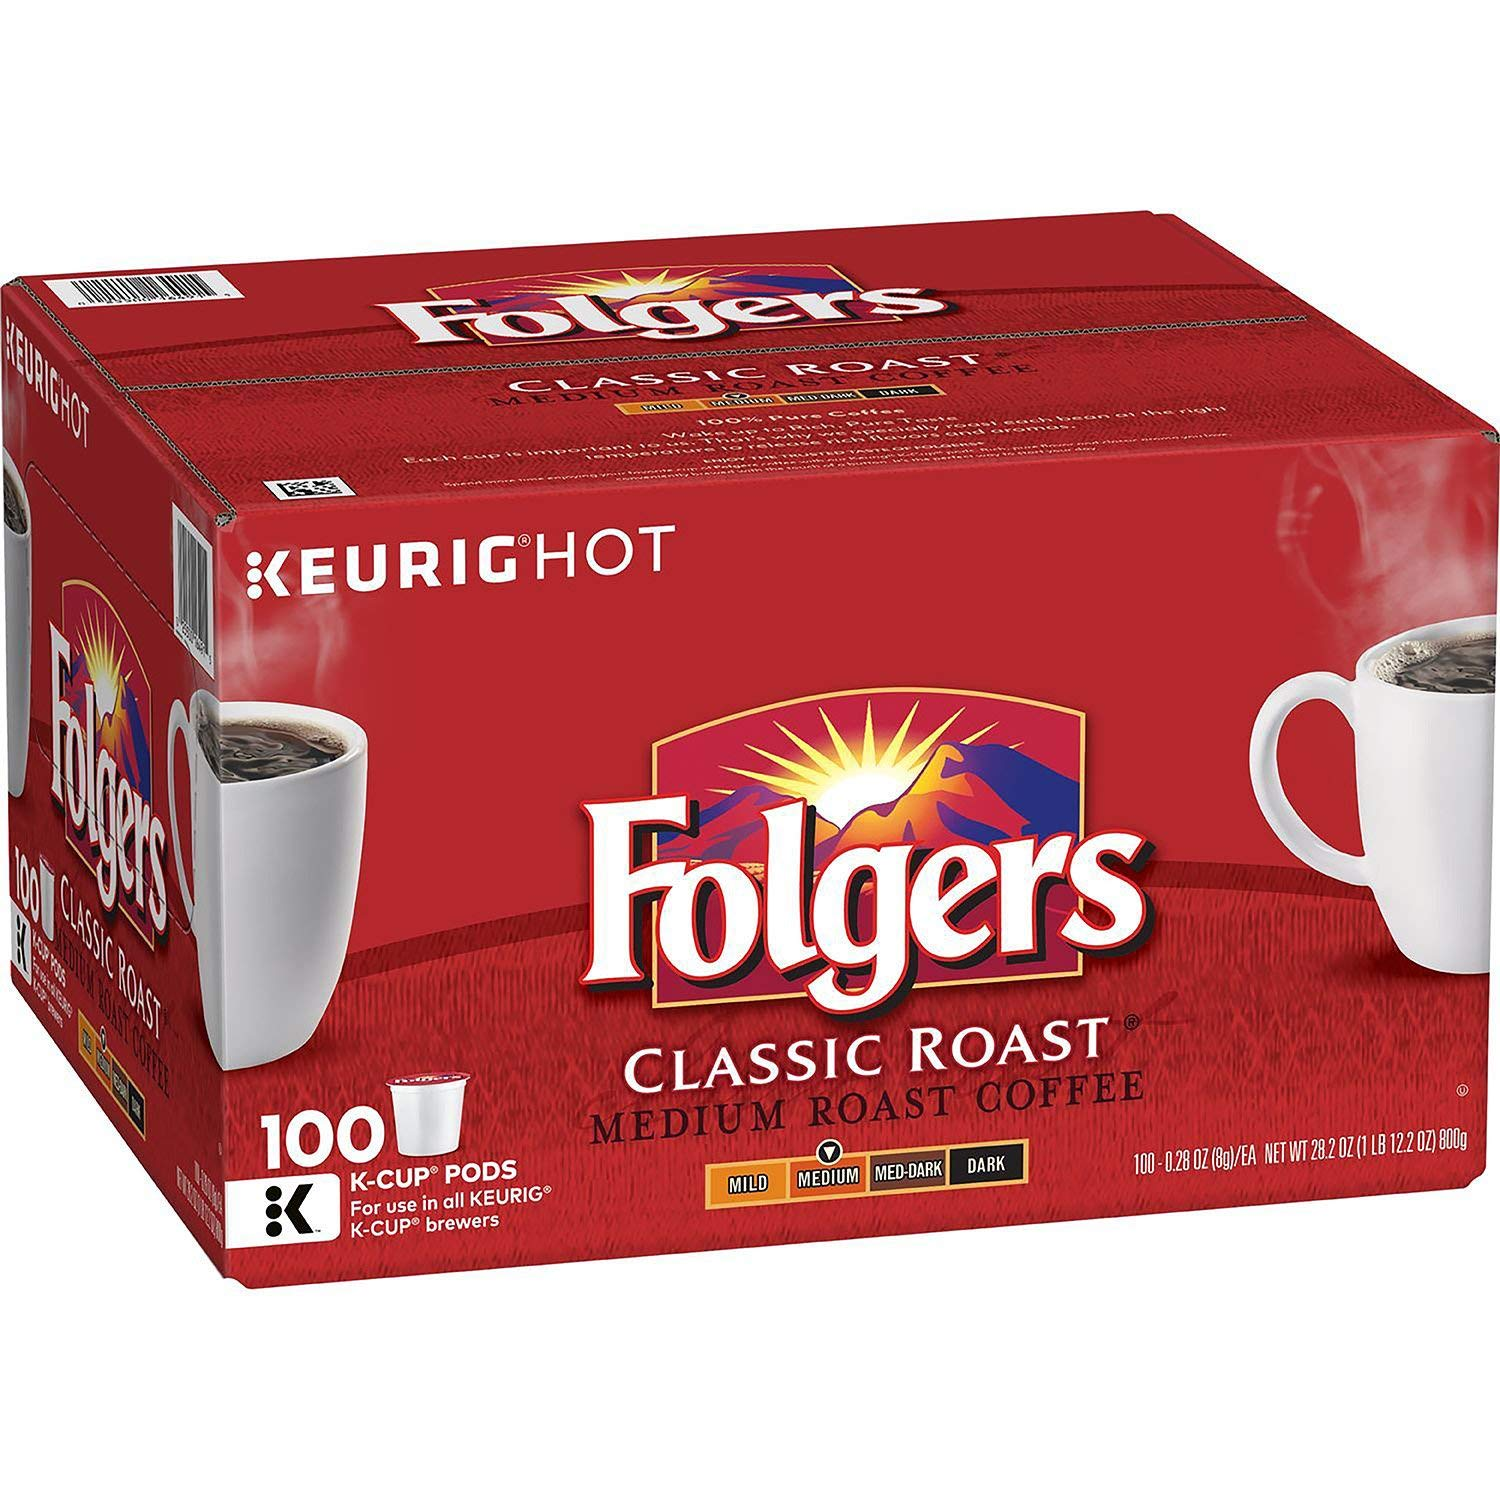 Folgers Classic Roast Coffee (100 K-Cups) by Folgers (Image #1)